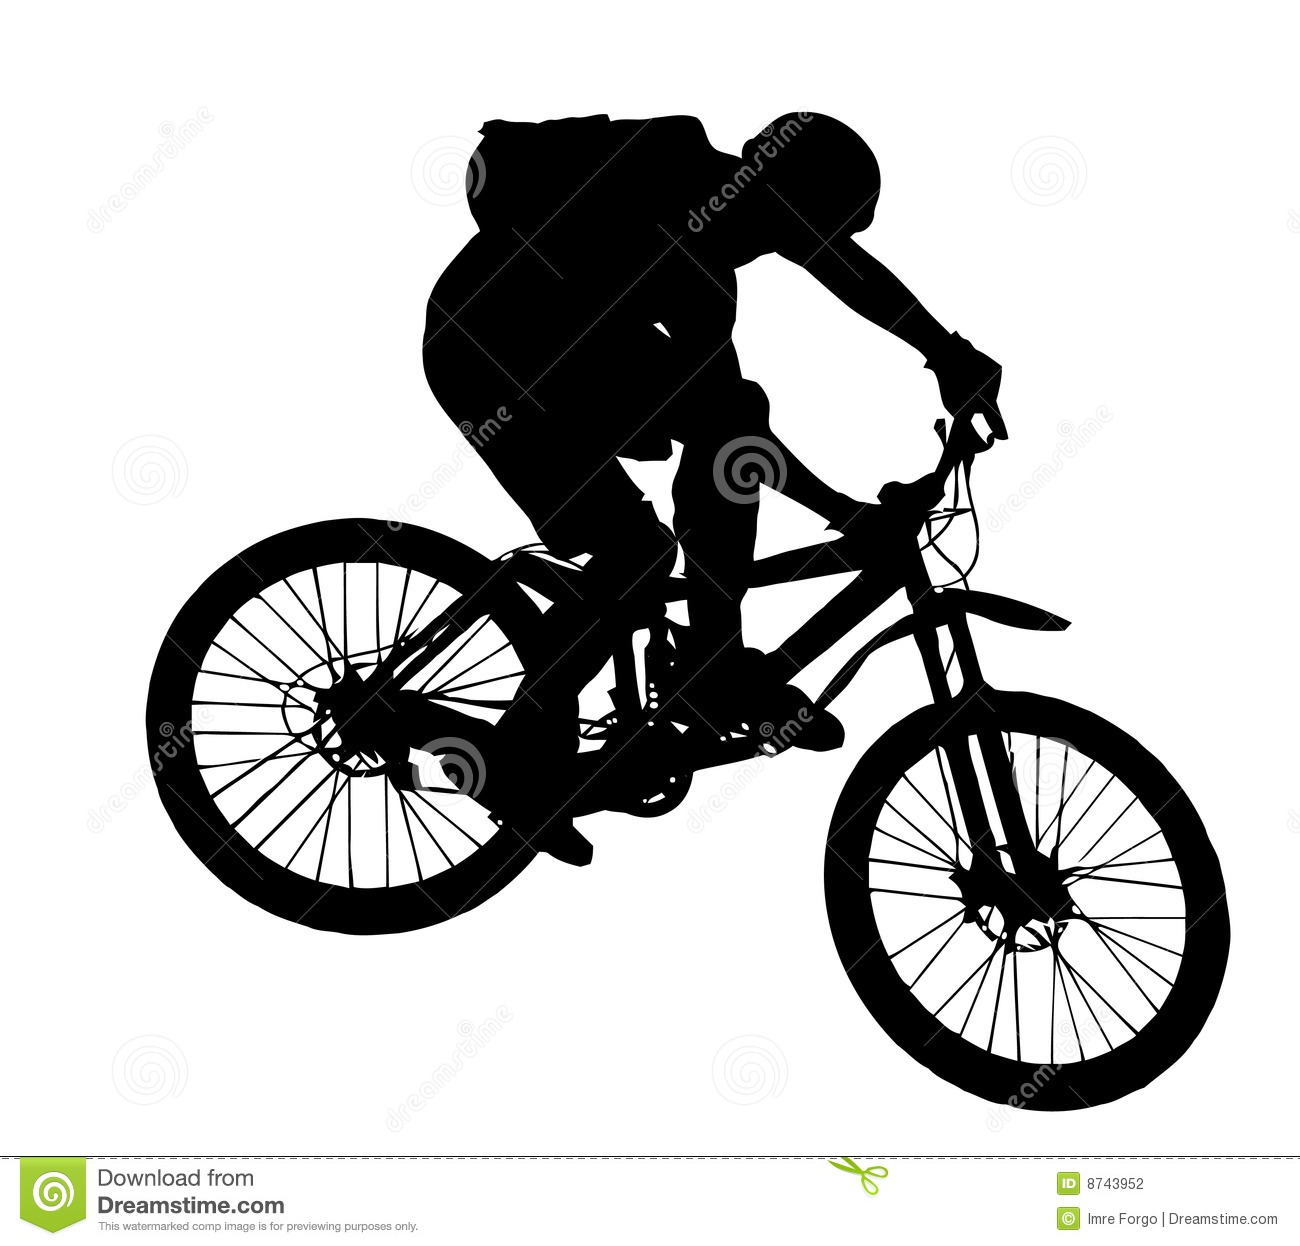 Downhill Wallpaper: Jump With A Mountain Bike Stock Vector. Illustration Of